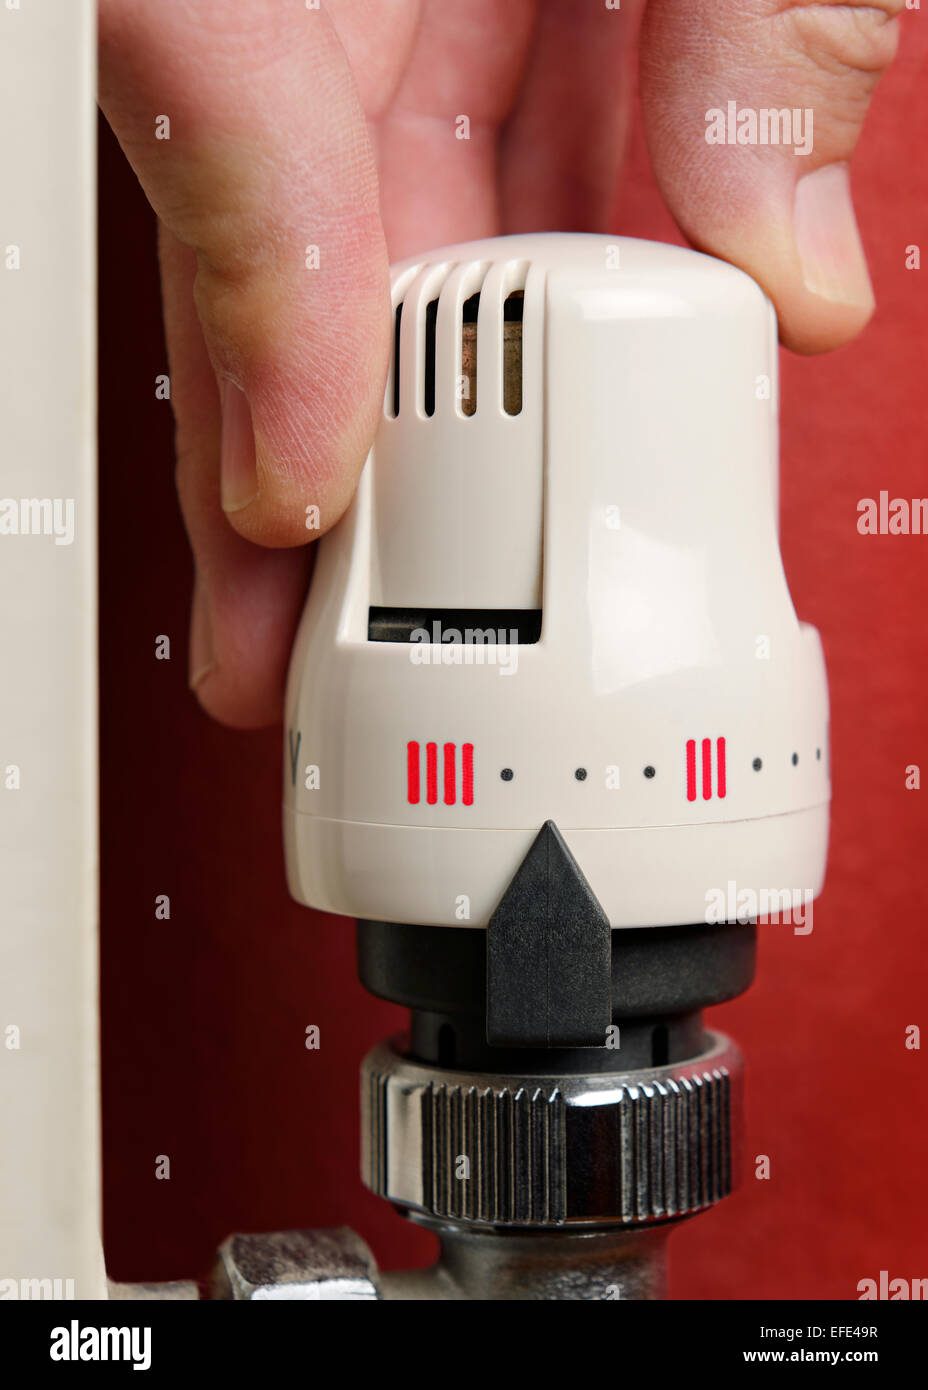 Adjusting the Thermostat on a Radiator, Close Up. - Stock Image